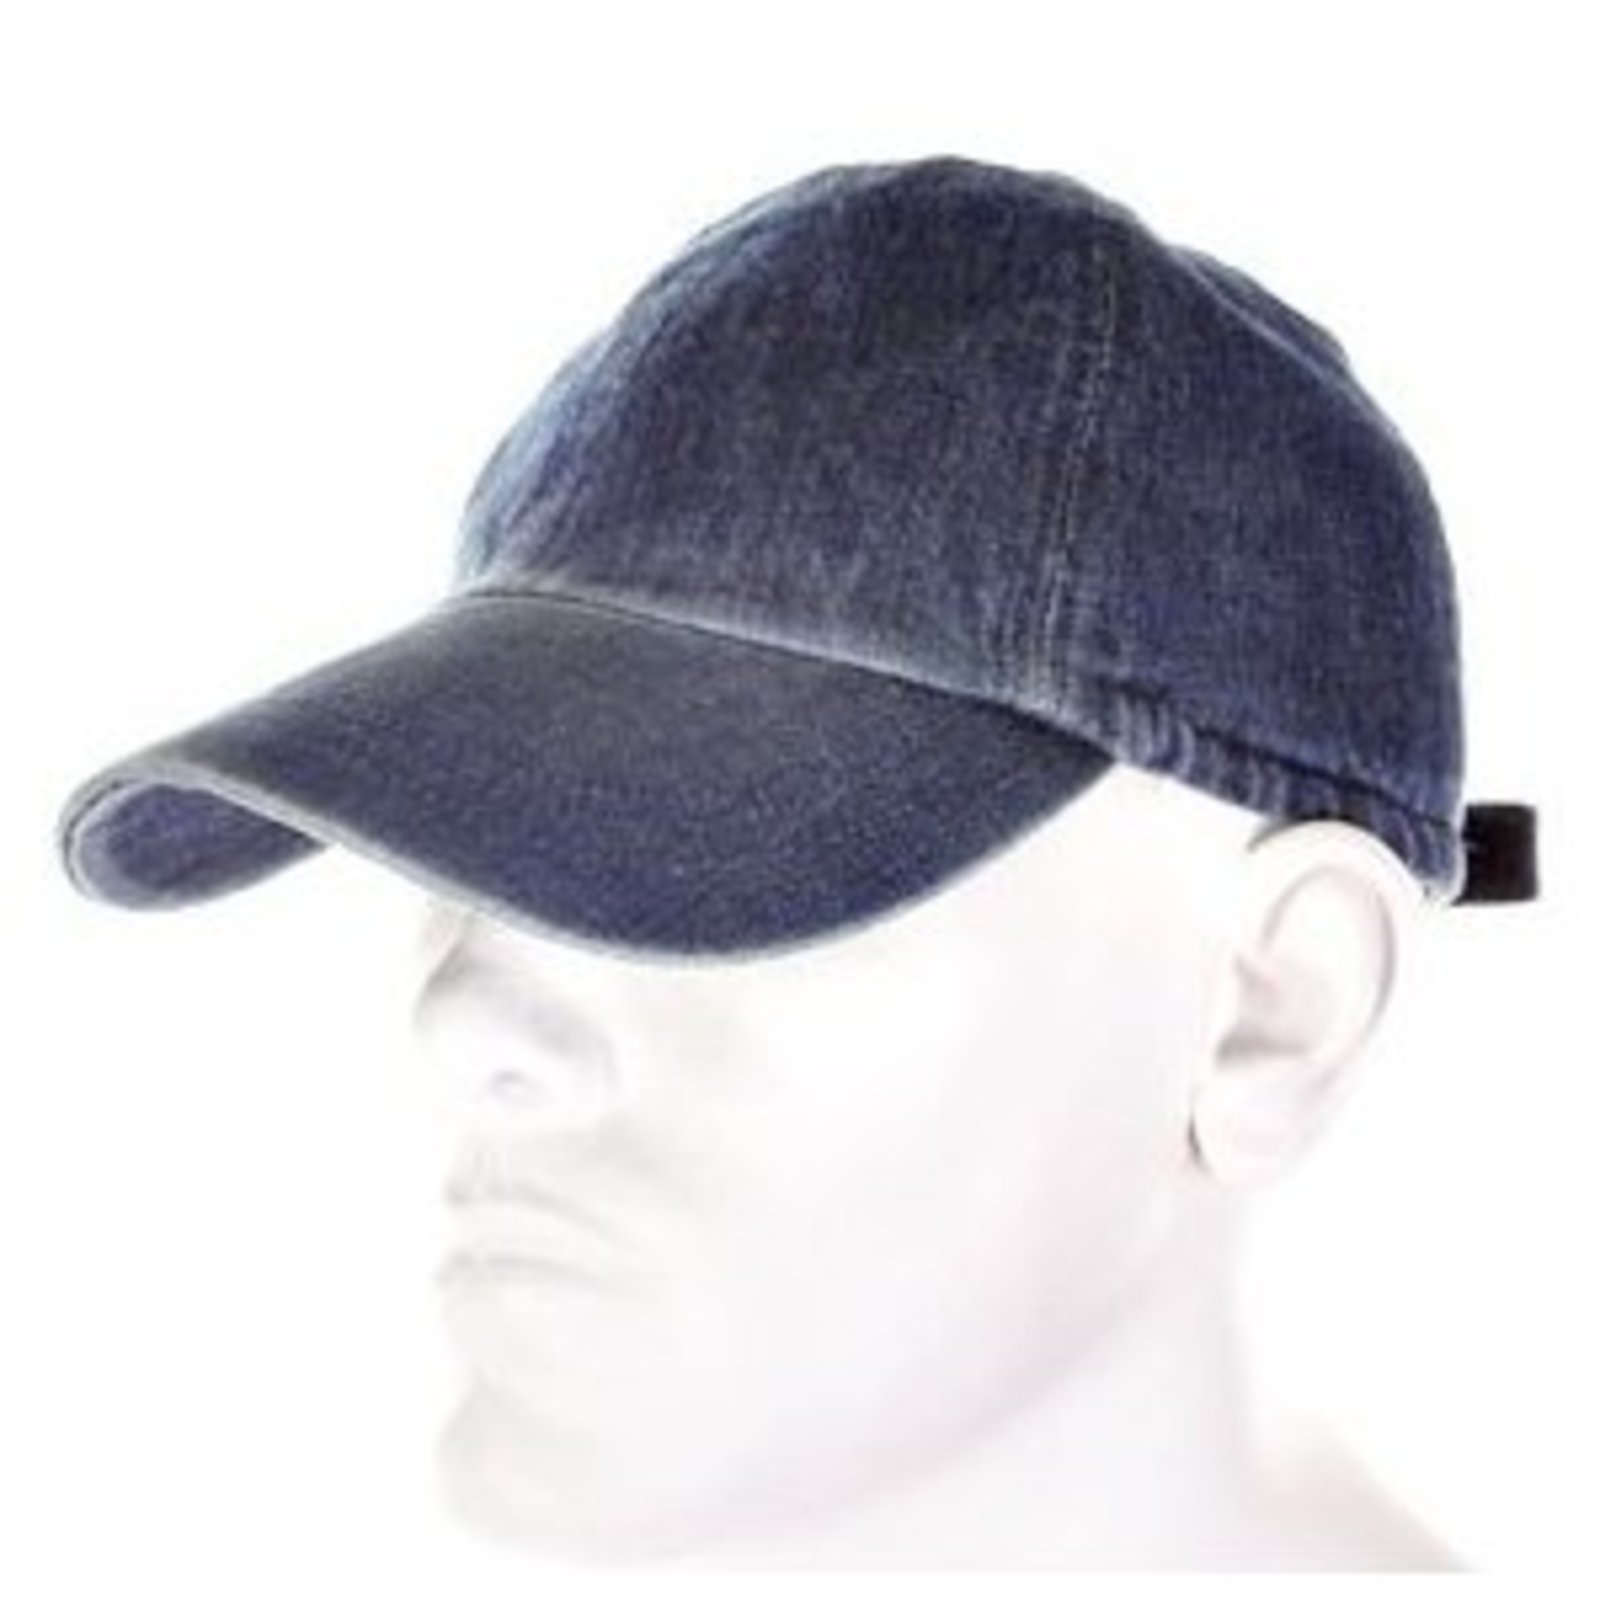 21ebf3cdd4f Burberry cap Designer denim classic check lined cap at Togged Clothing